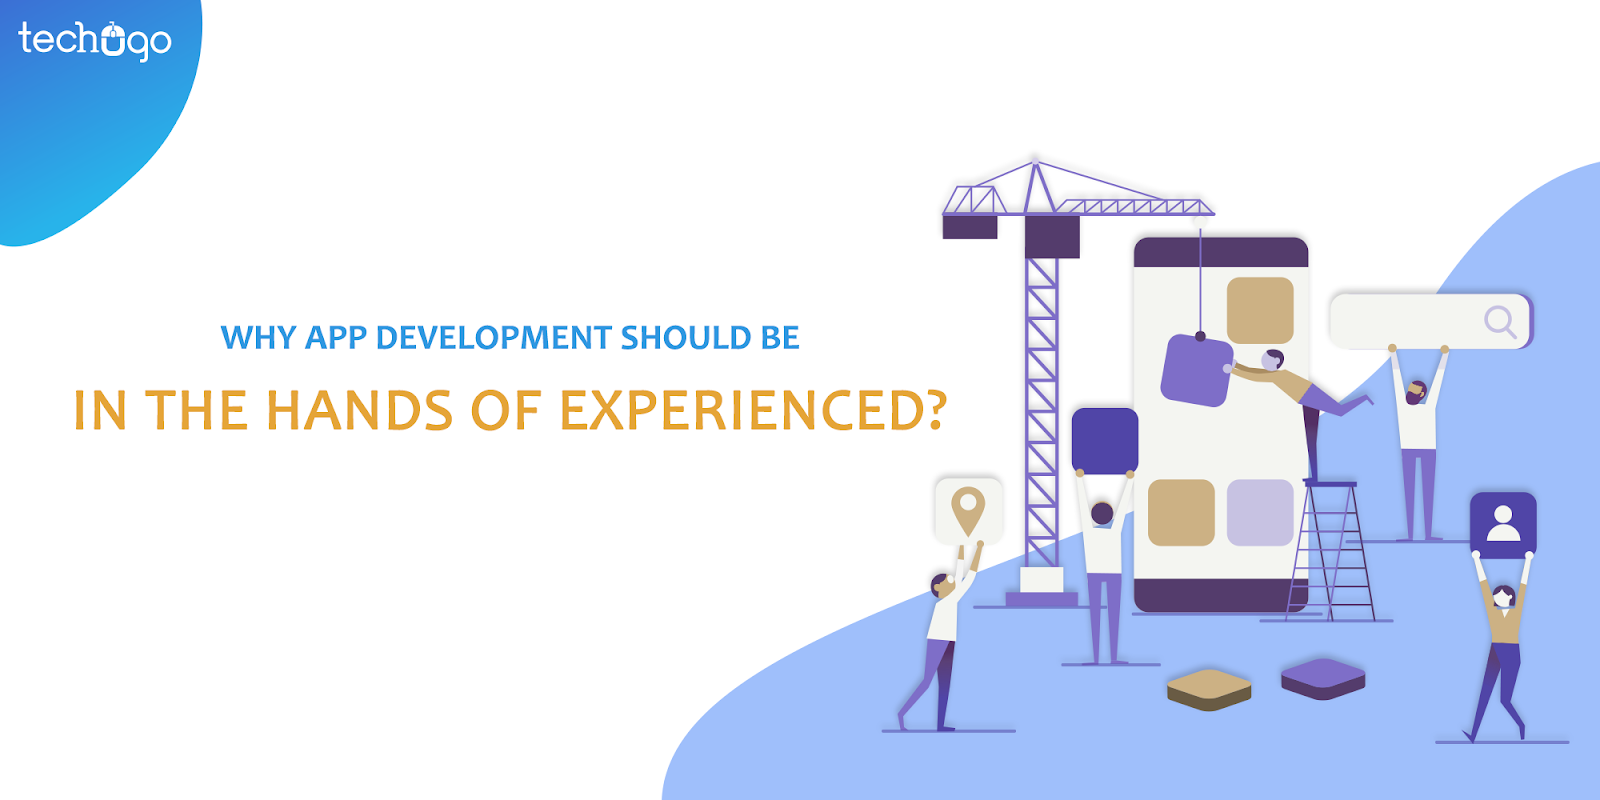 Why App Development Should Be In The Hands Of Experienced?